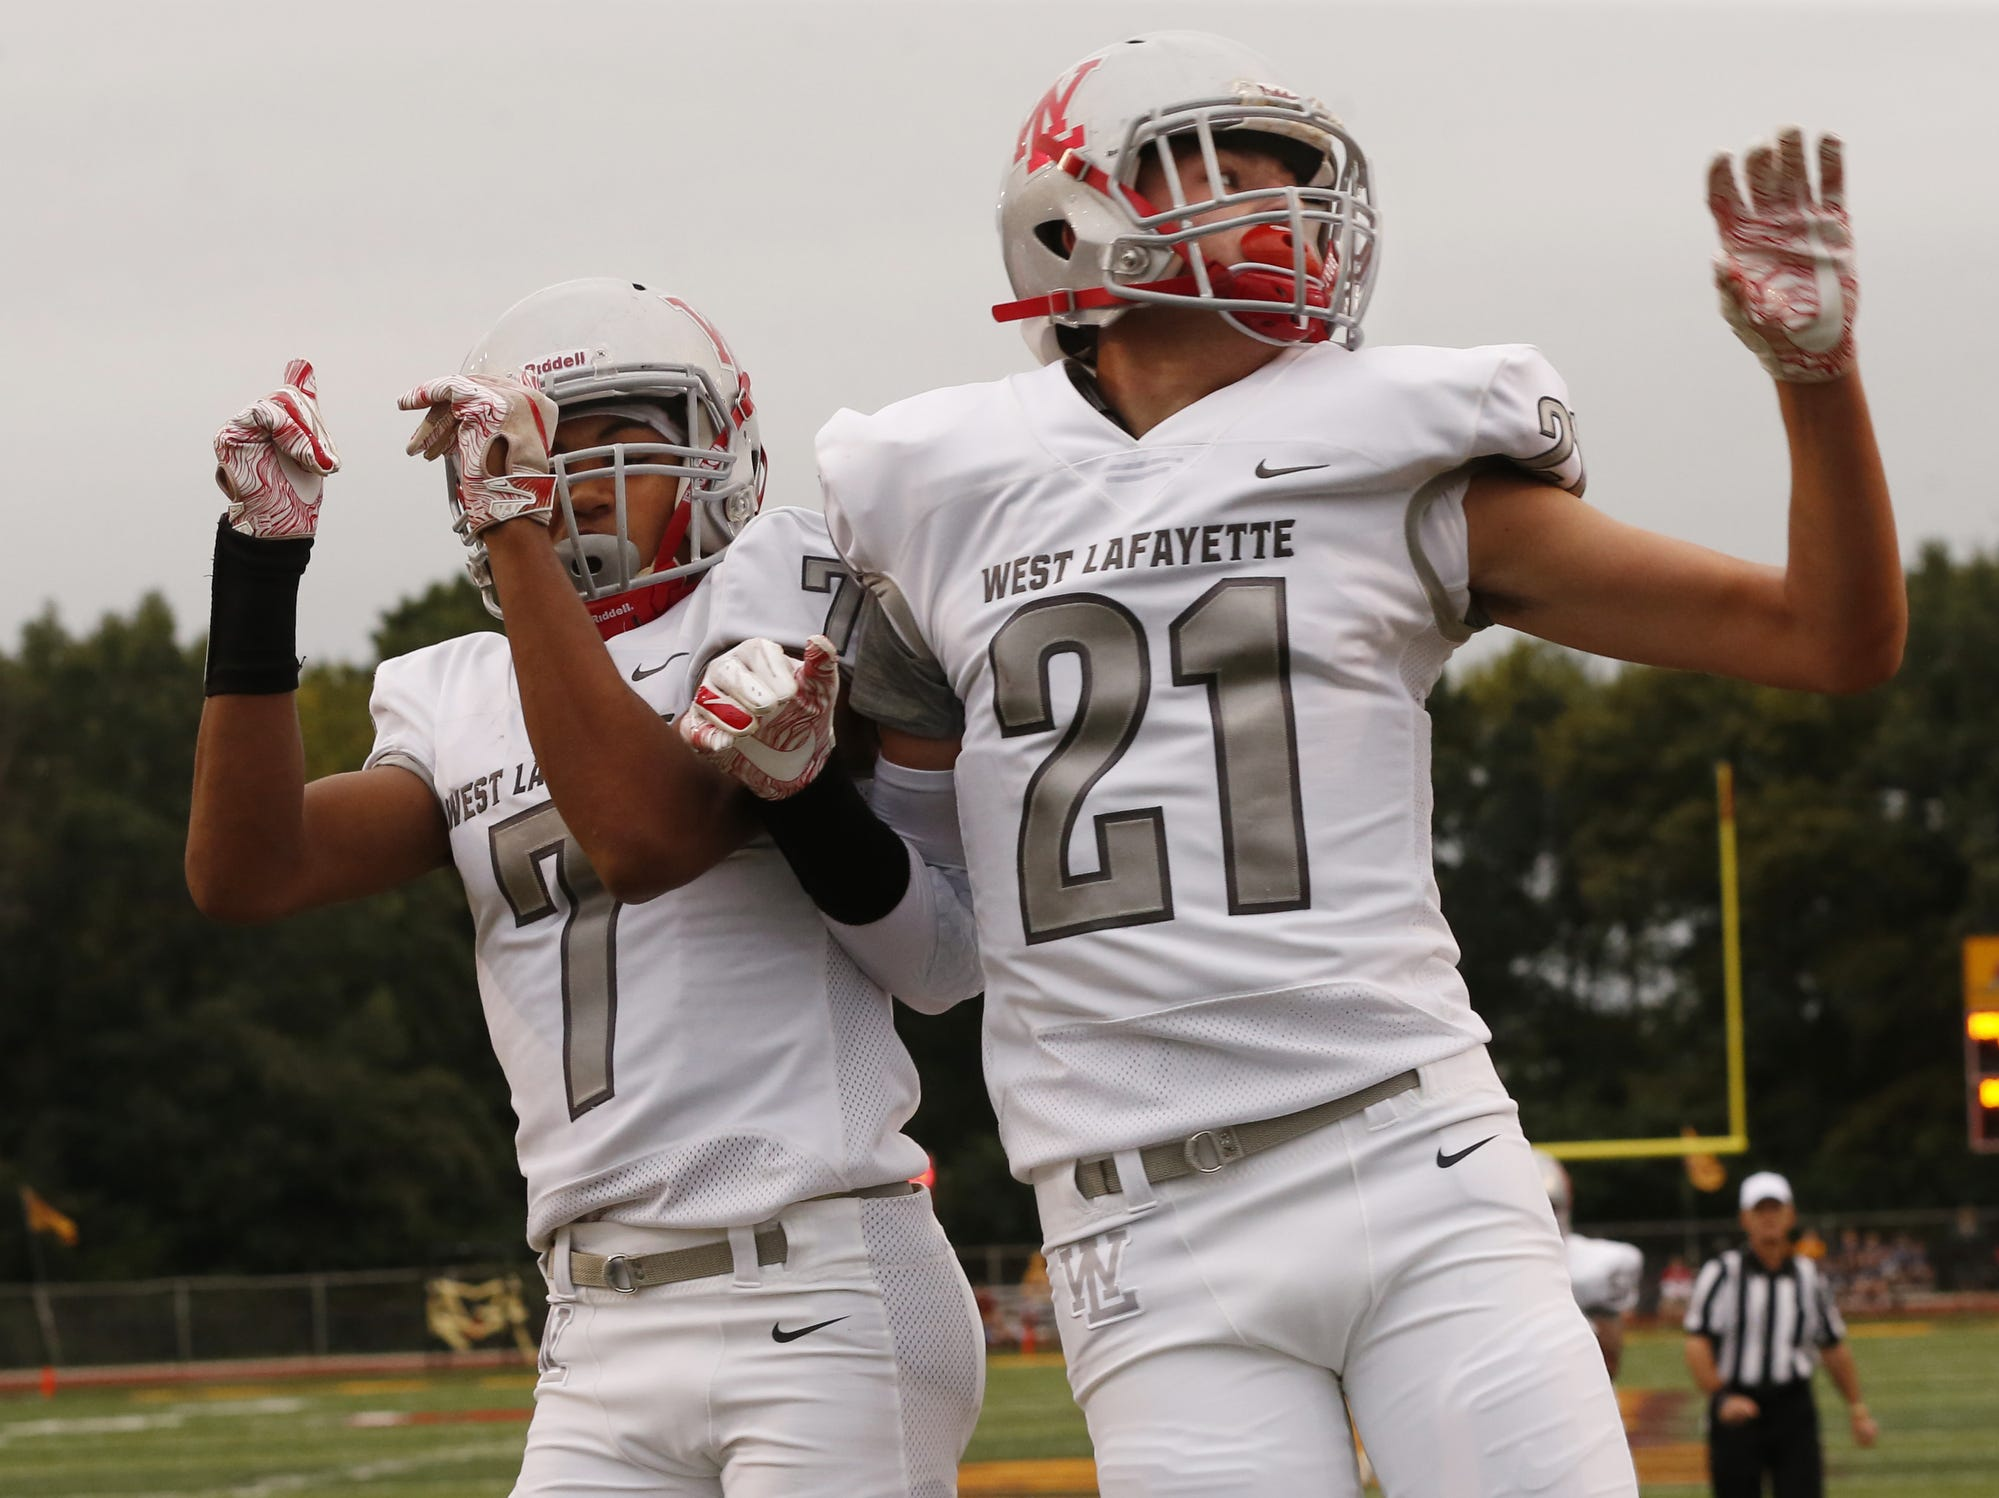 Harrison Truitt of West Lafayette celebrates with teammate Kyle Hazell after his touchdown reception at 7:35 in the first quarter against McCutcheon Friday, August 24, 2018, in Lafayette. West Lafayette defeated McCutcheon 34-20.